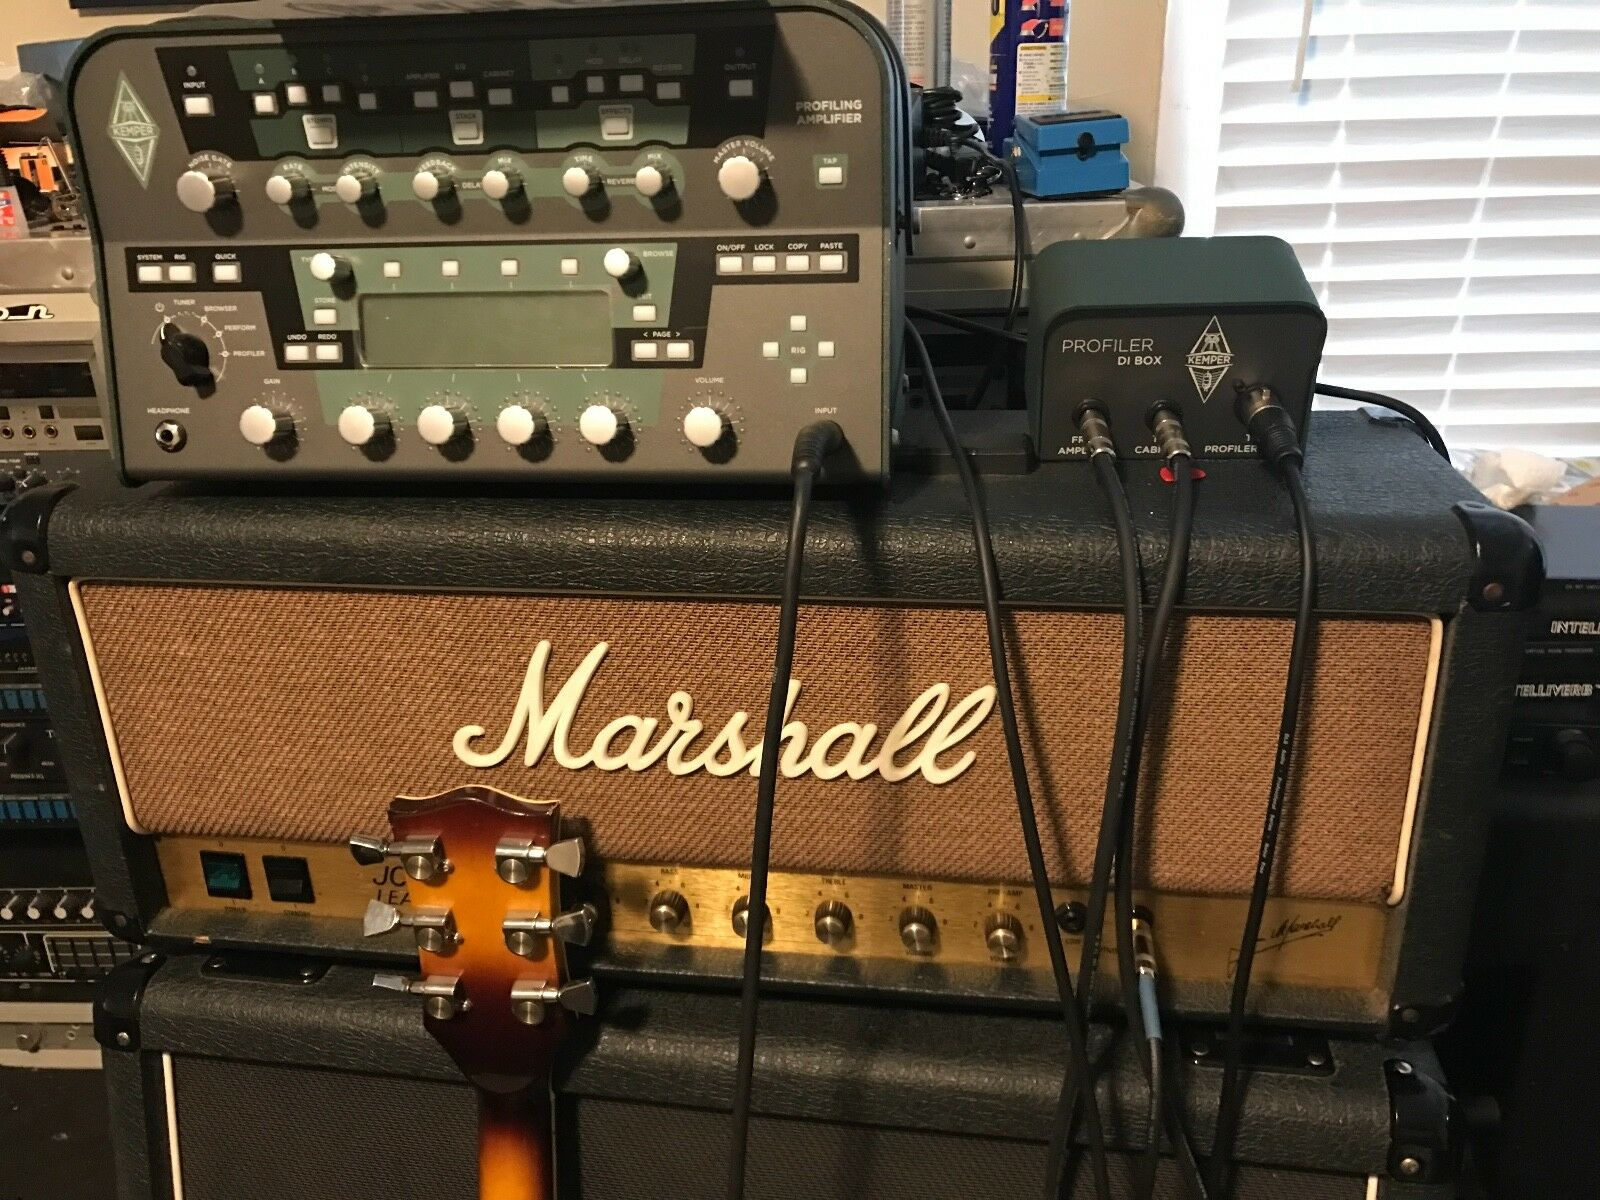 Official Mark Cameron SFG Kemper profile collection ALL 12 mods and amps SALE!